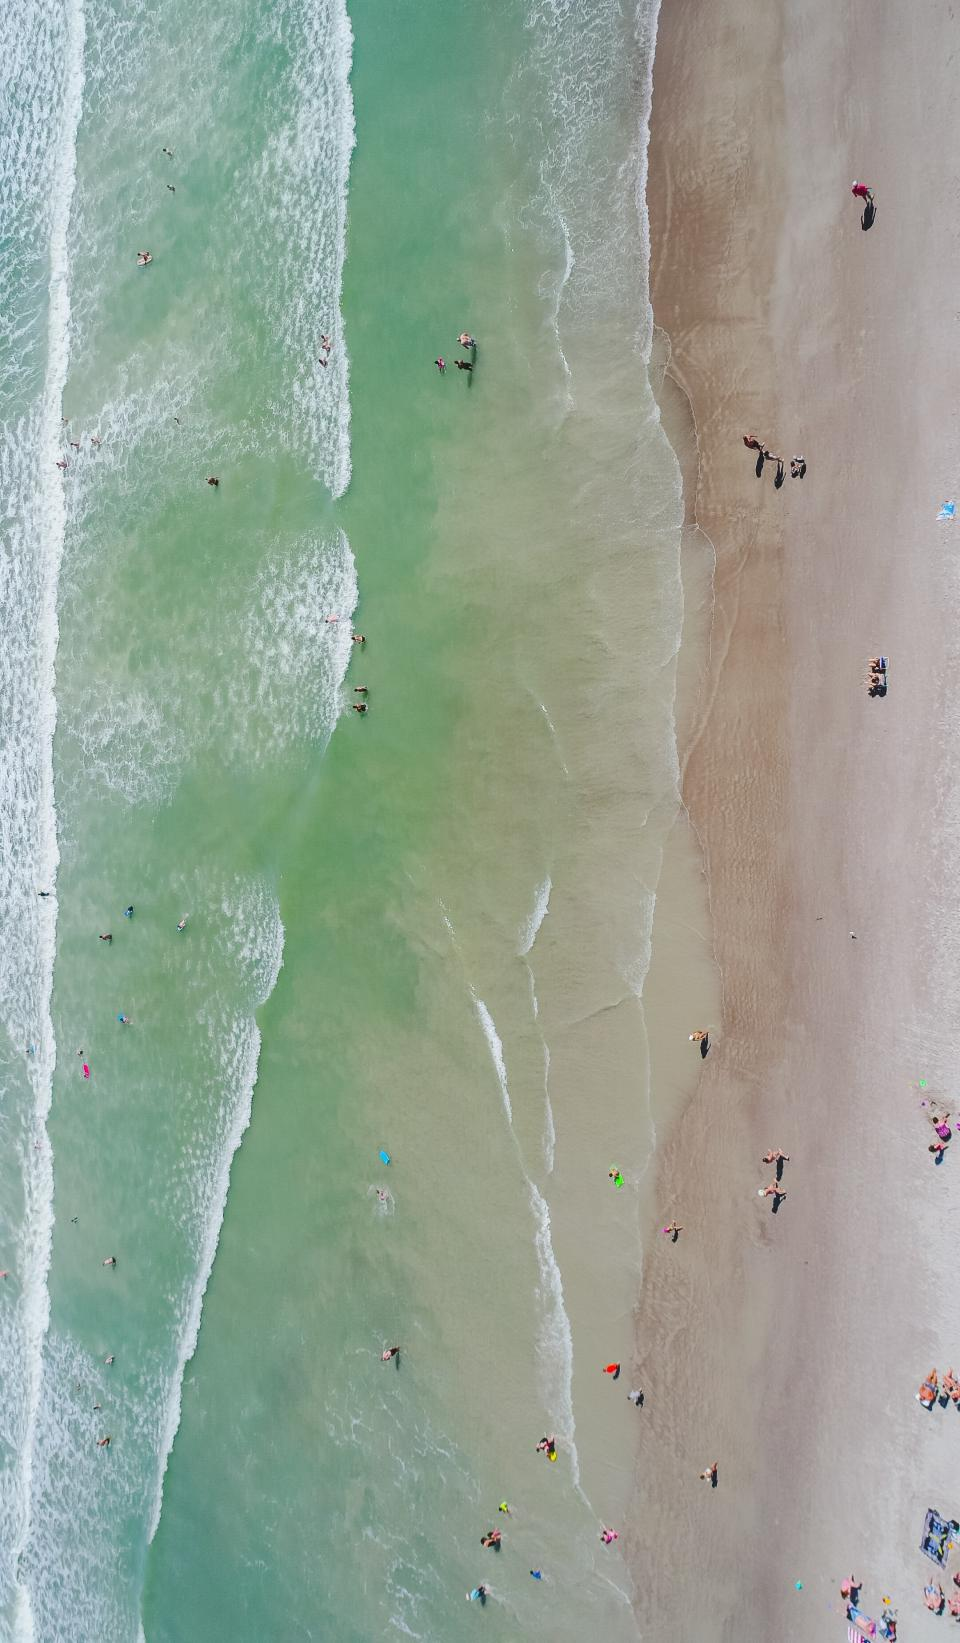 sea, ocean, water, waves, nature, beach, coast, white, sand, shore, people, crowd, family, friends, swimming, outdoor, summer, vacation, travel